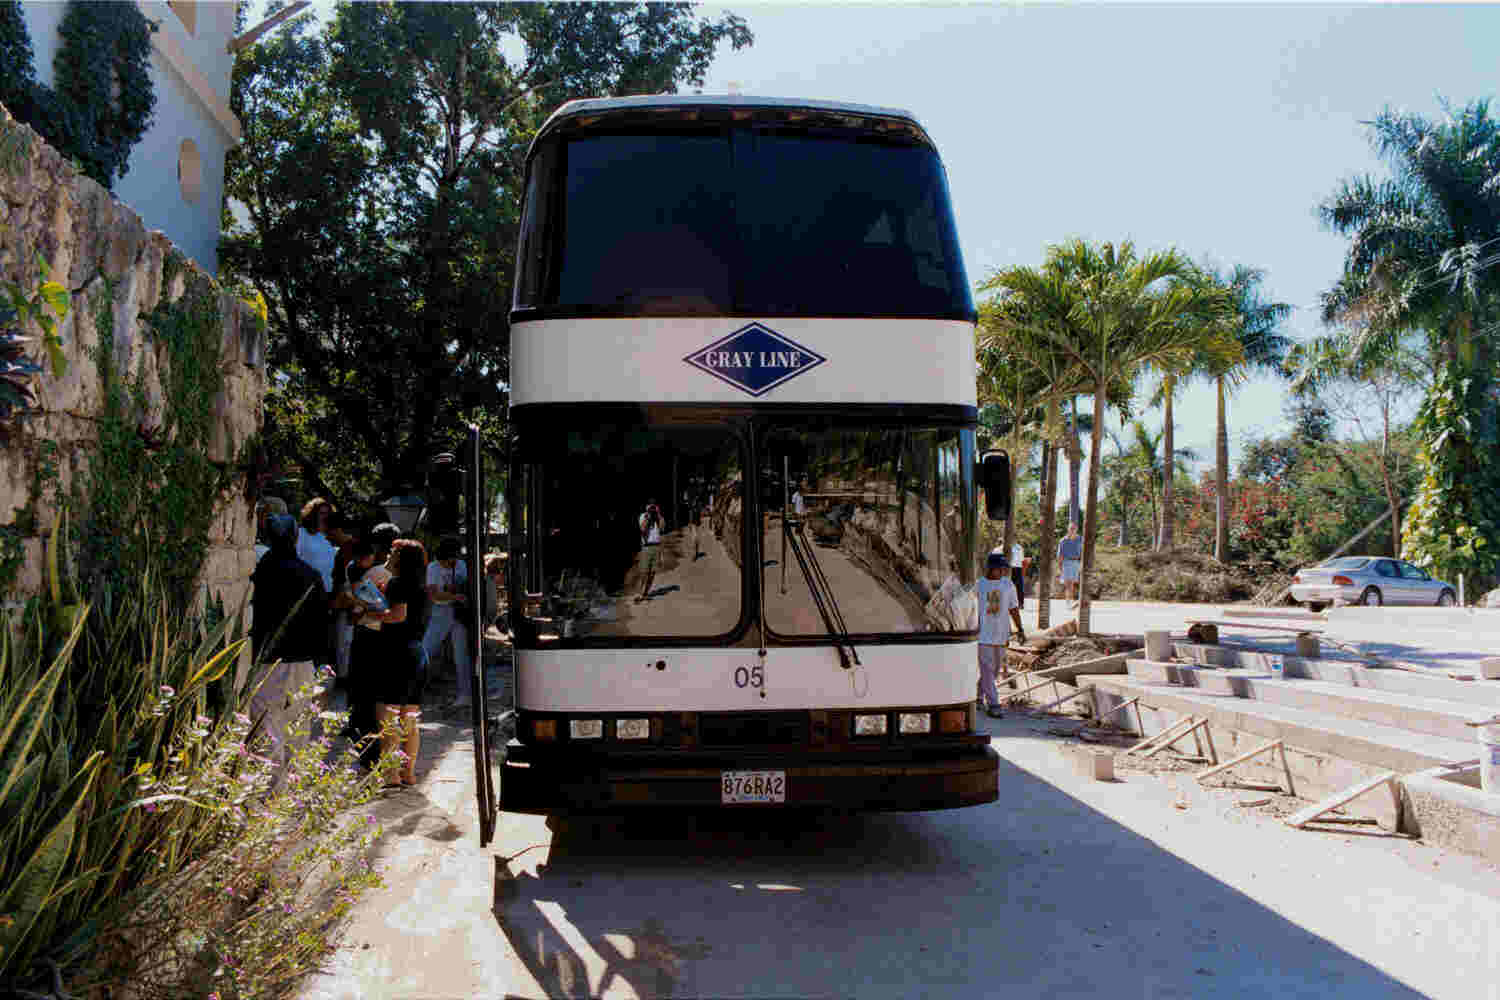 The bus arrives at Chichen Itza